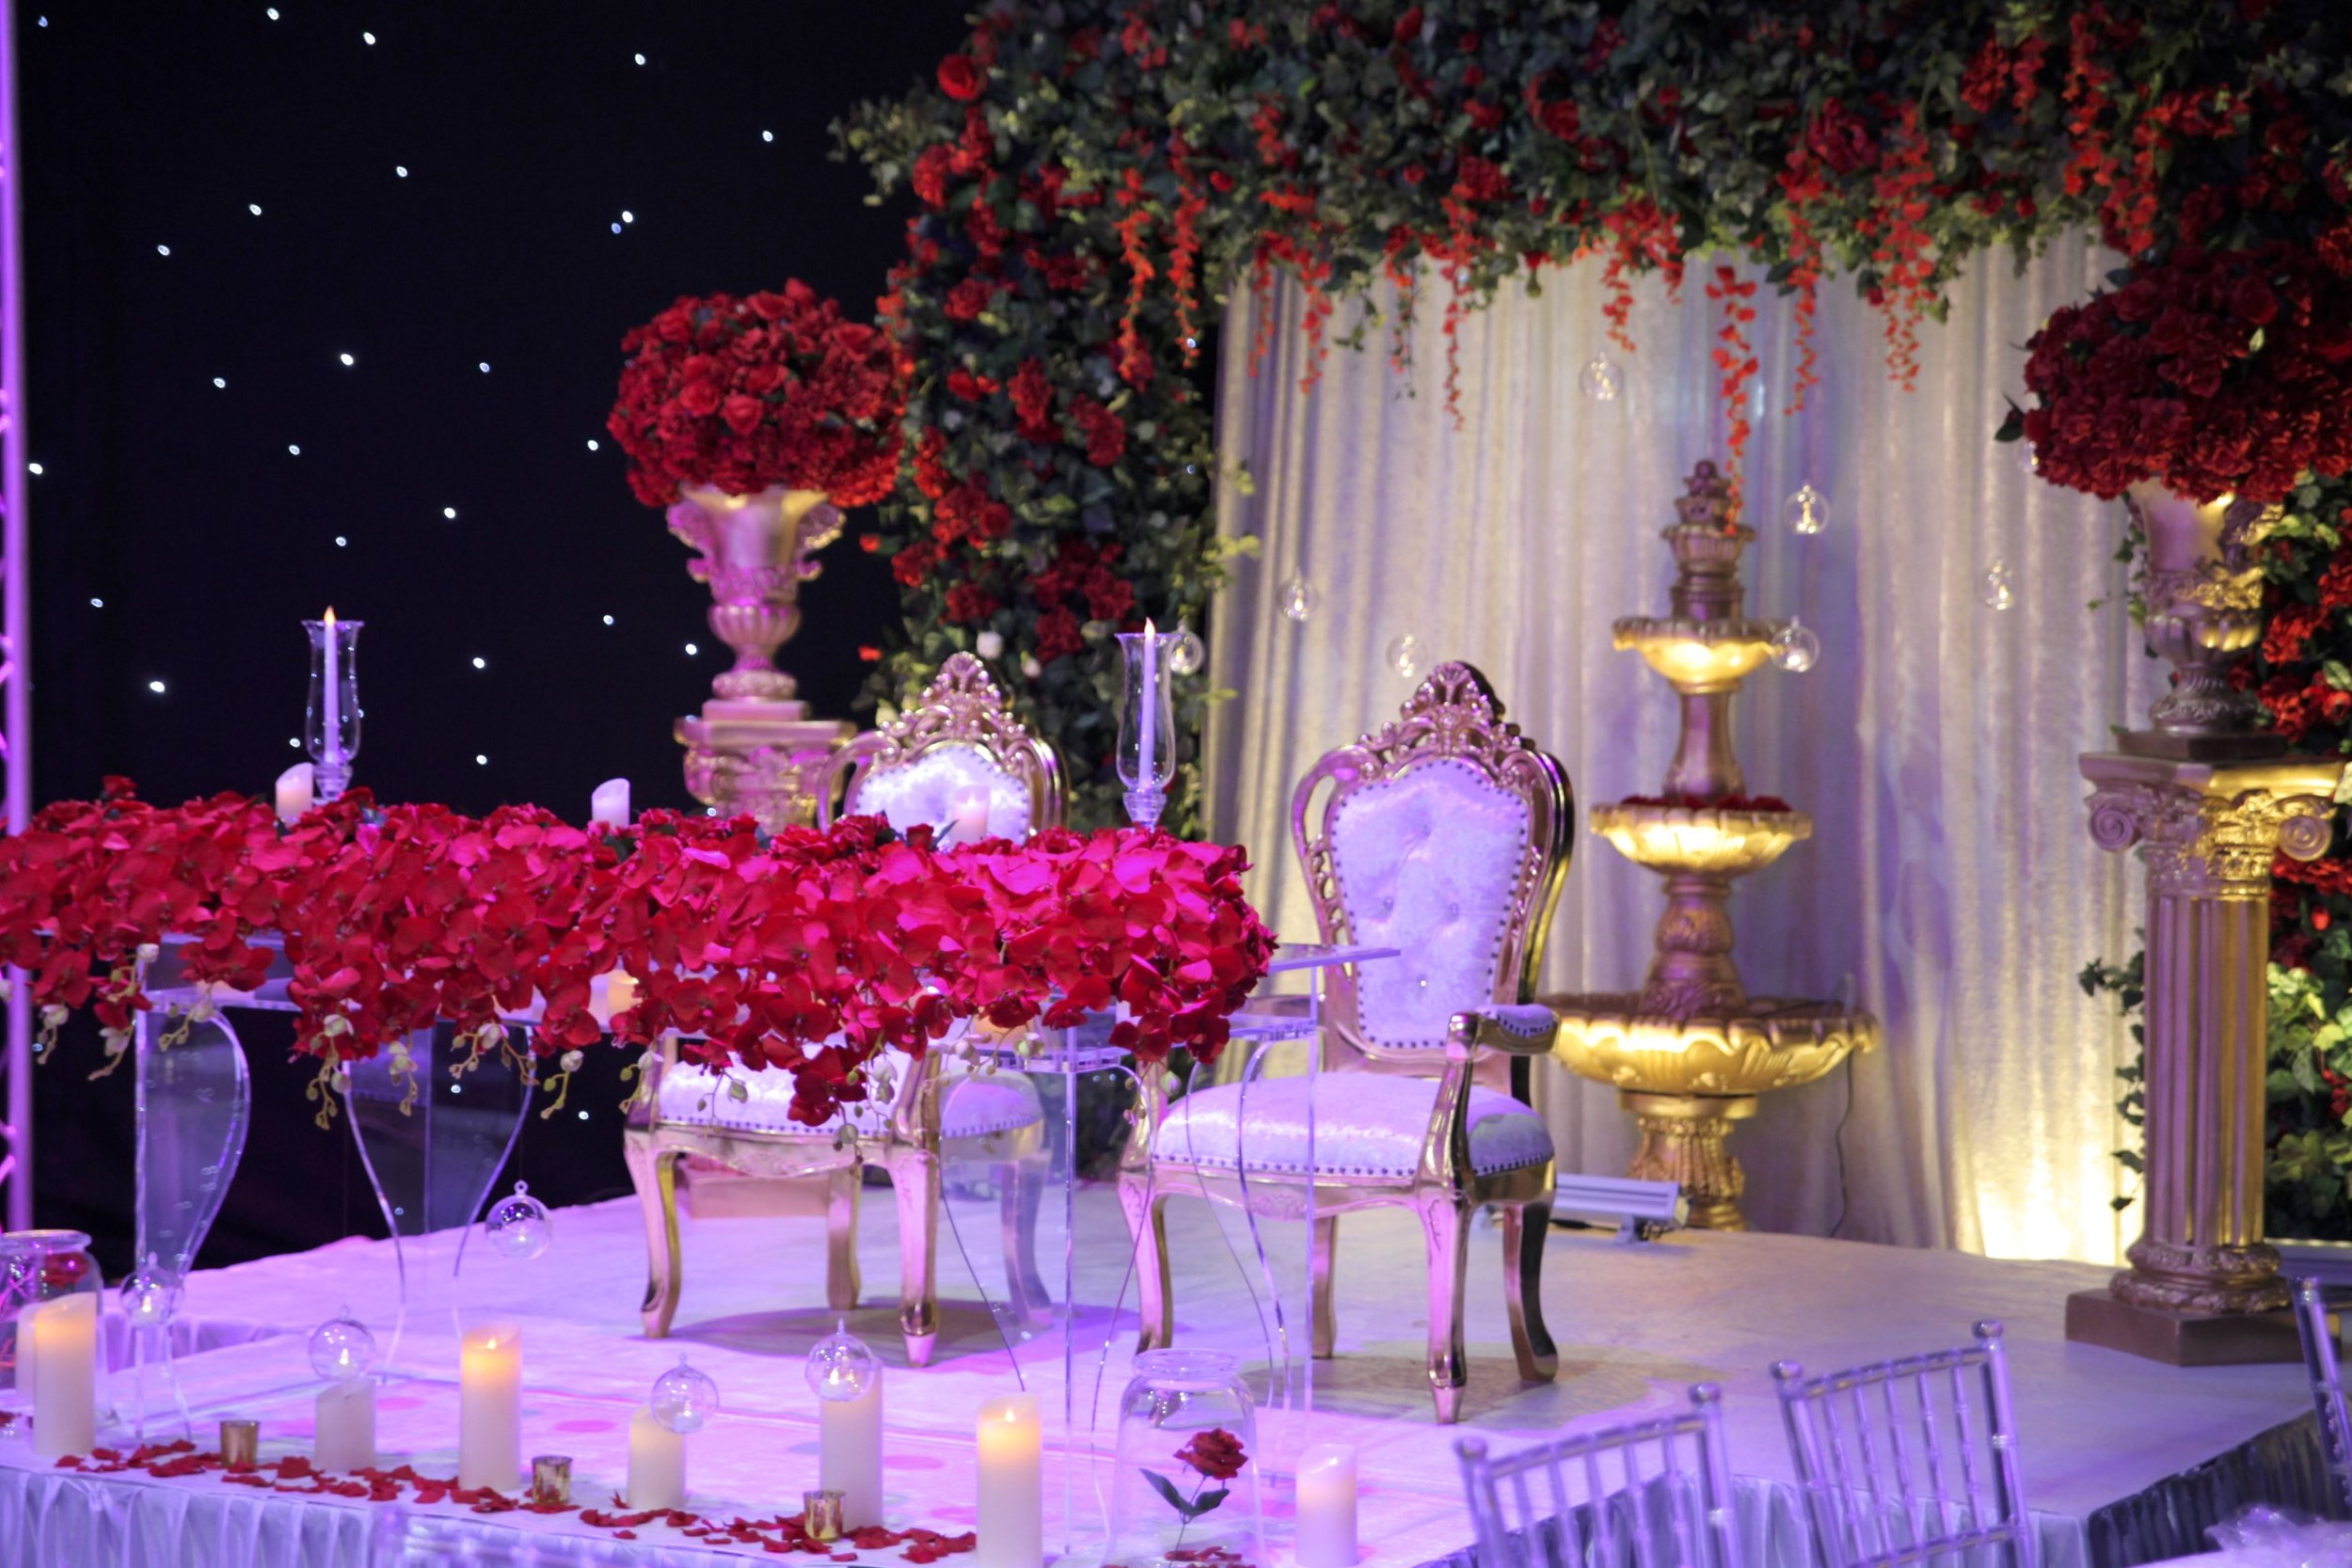 Enchanted Head Table - Our couple wanted an iconic look for their head-table. We used a transparent table to create a floating rose bush, with a custom made floral backdrop draped in red roses to complement the extravagant theme.